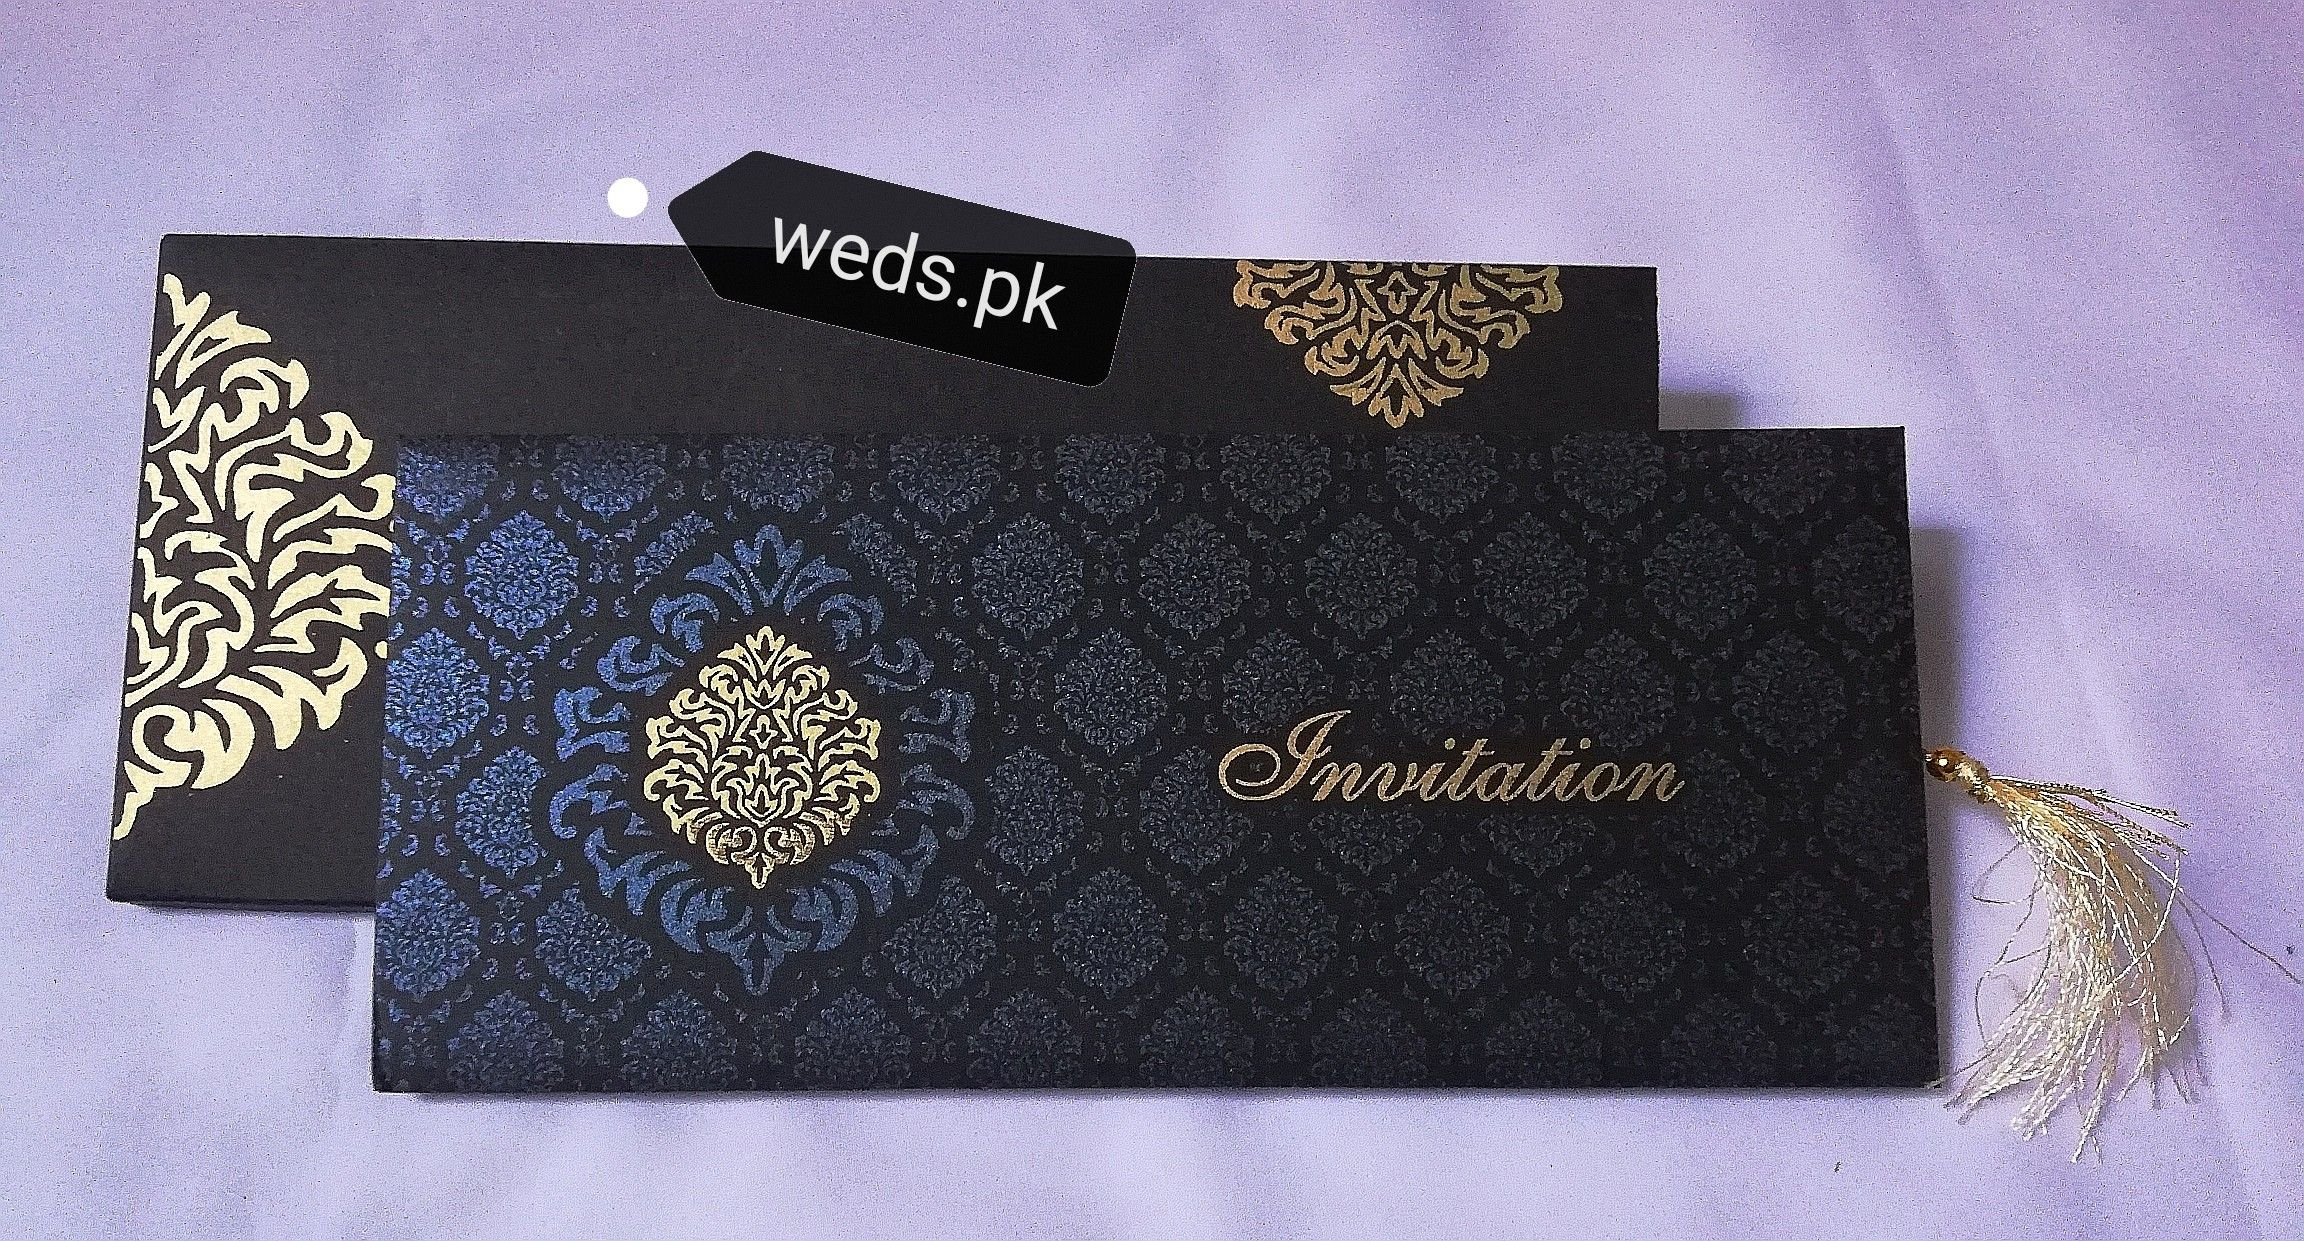 Wedding Cards Pakistan Pakistani Wedding Cards Wedding Cards Wedding Invitation Card Design